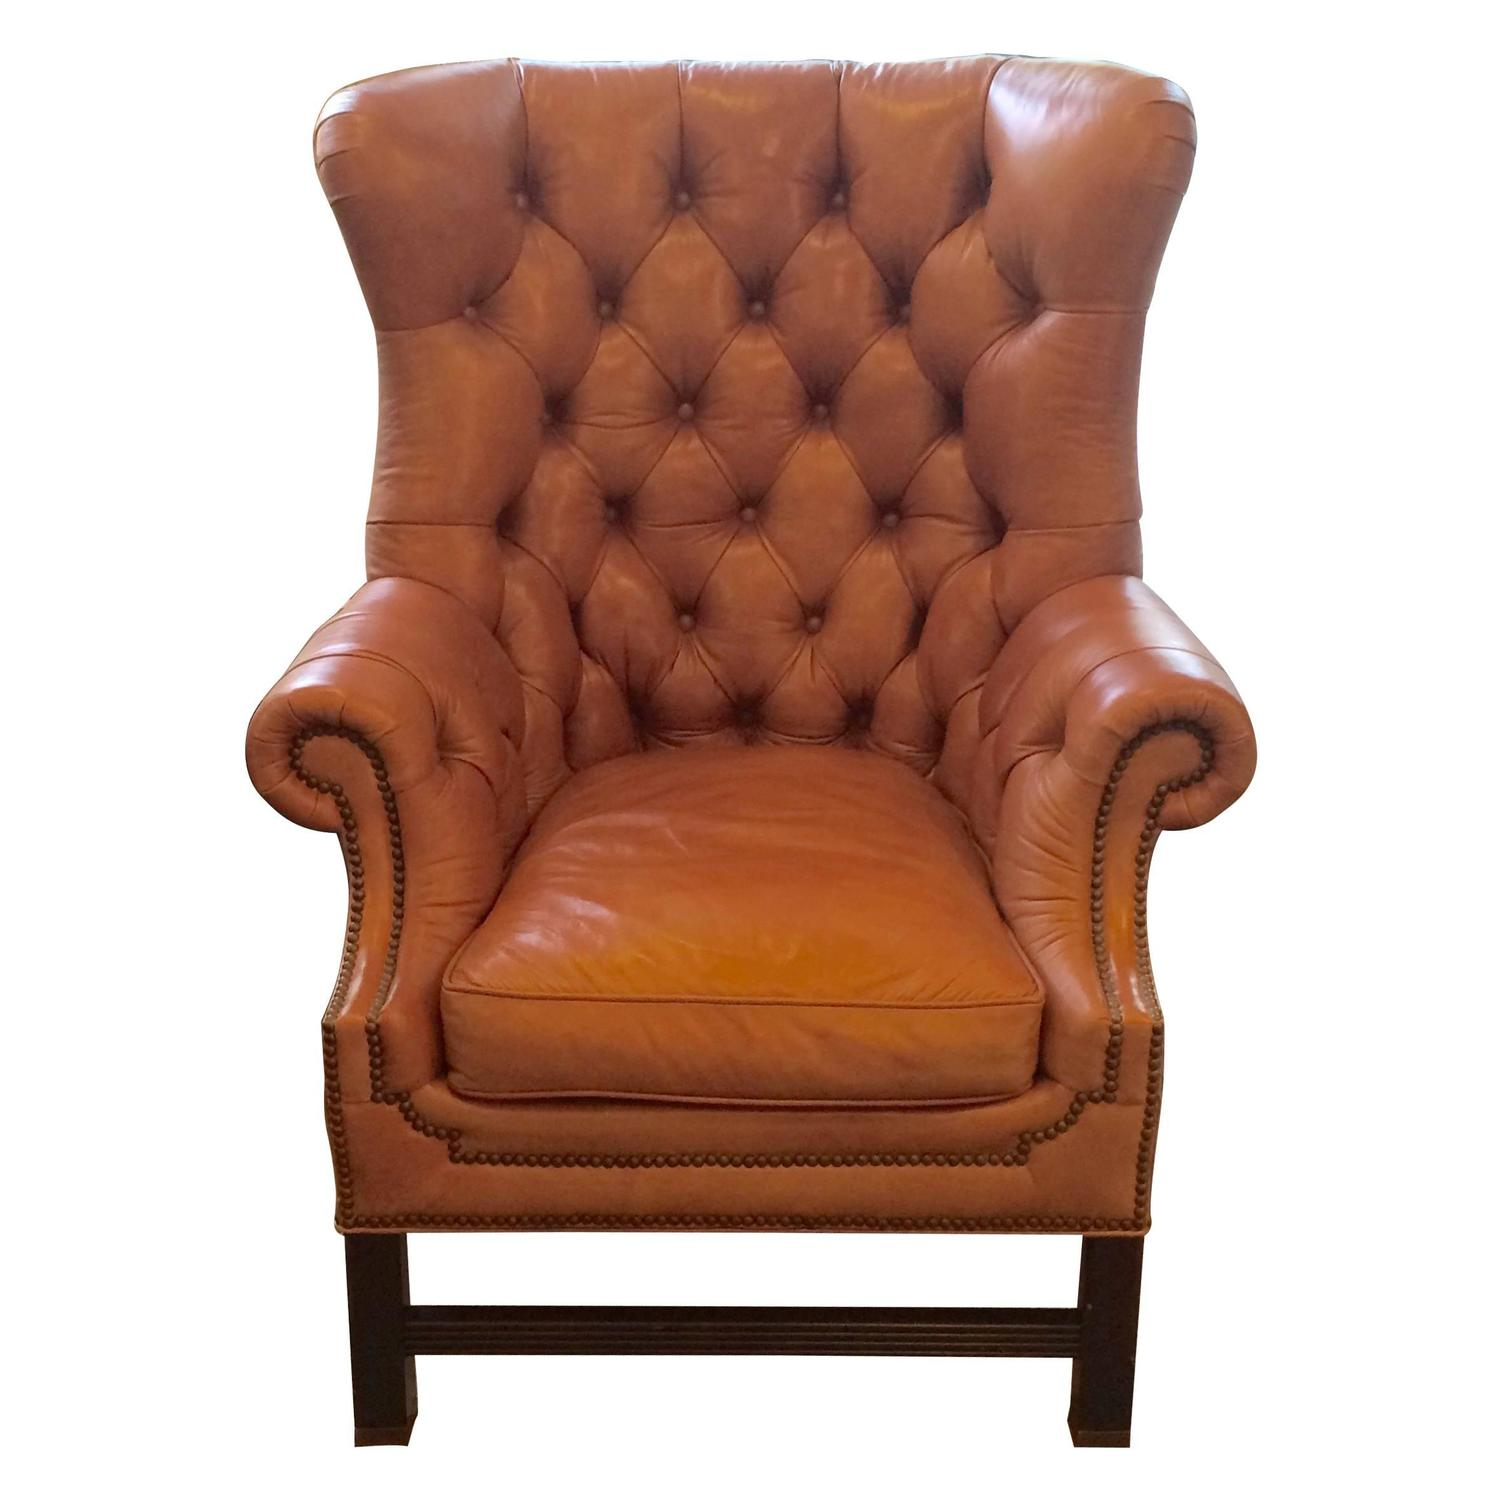 Rich Camel Leather Tufted Wing Chair For Sale at 1stdibs